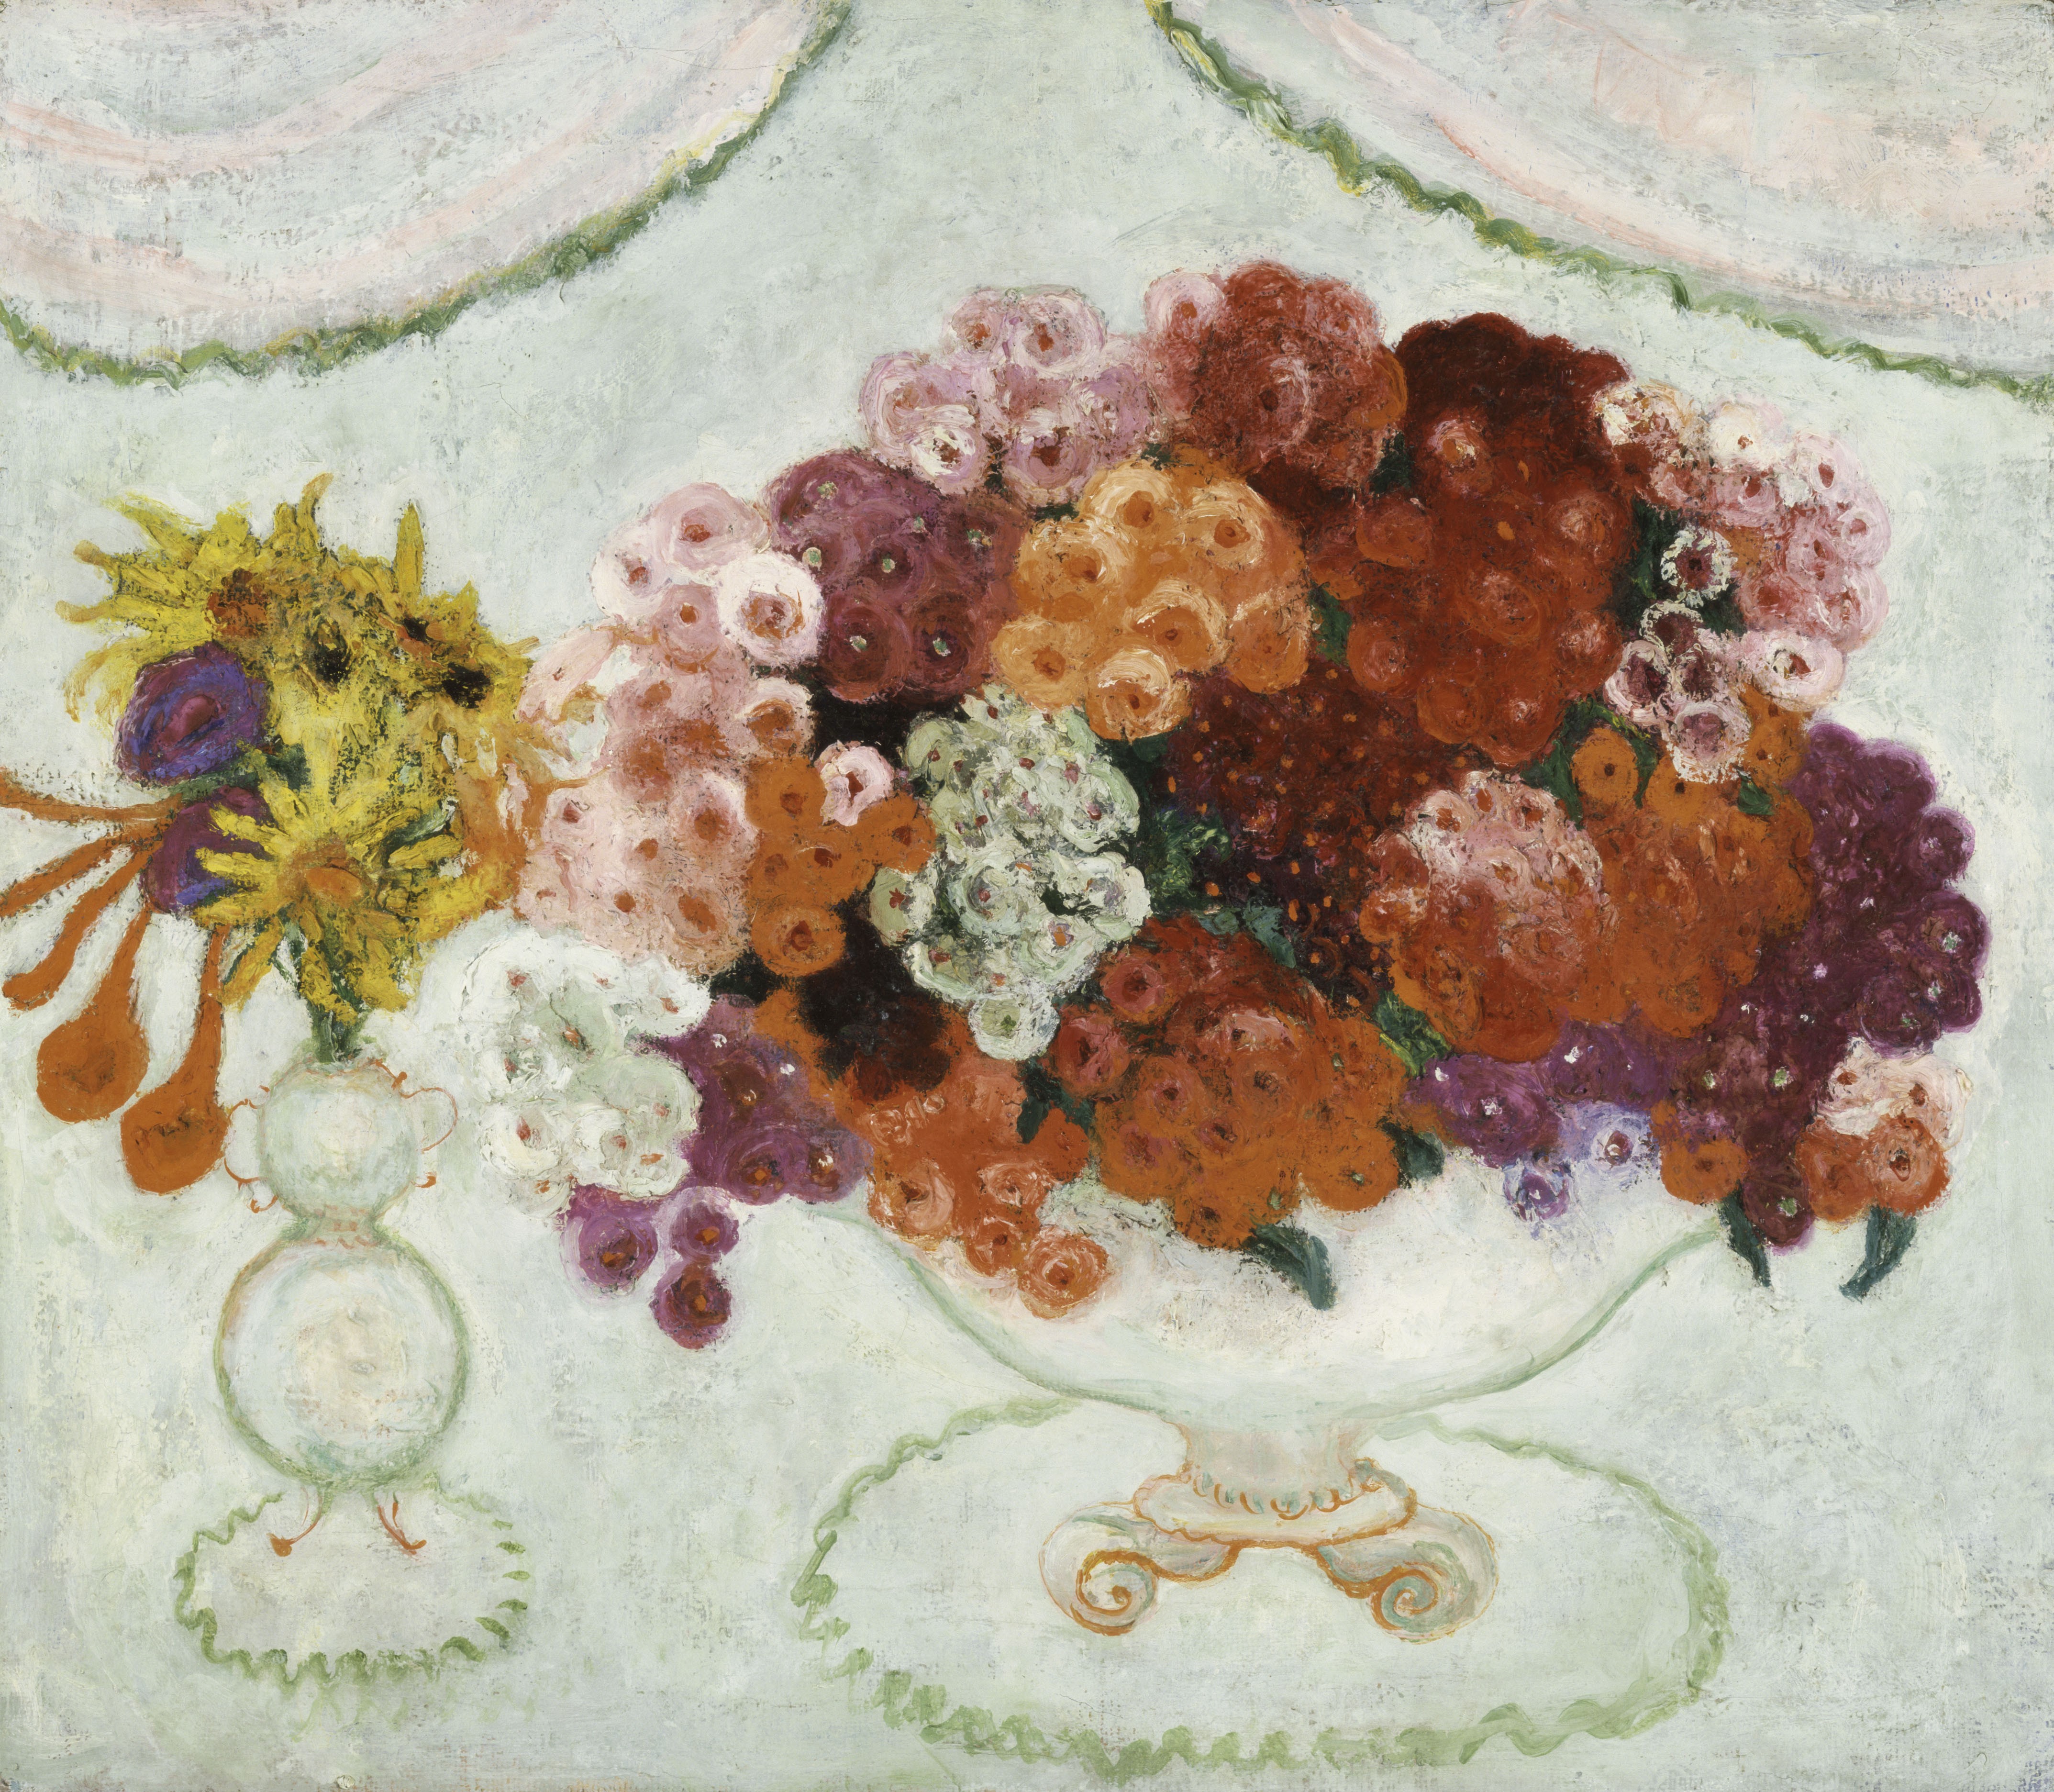 Still Life with Flowers by Florine Stettheimer